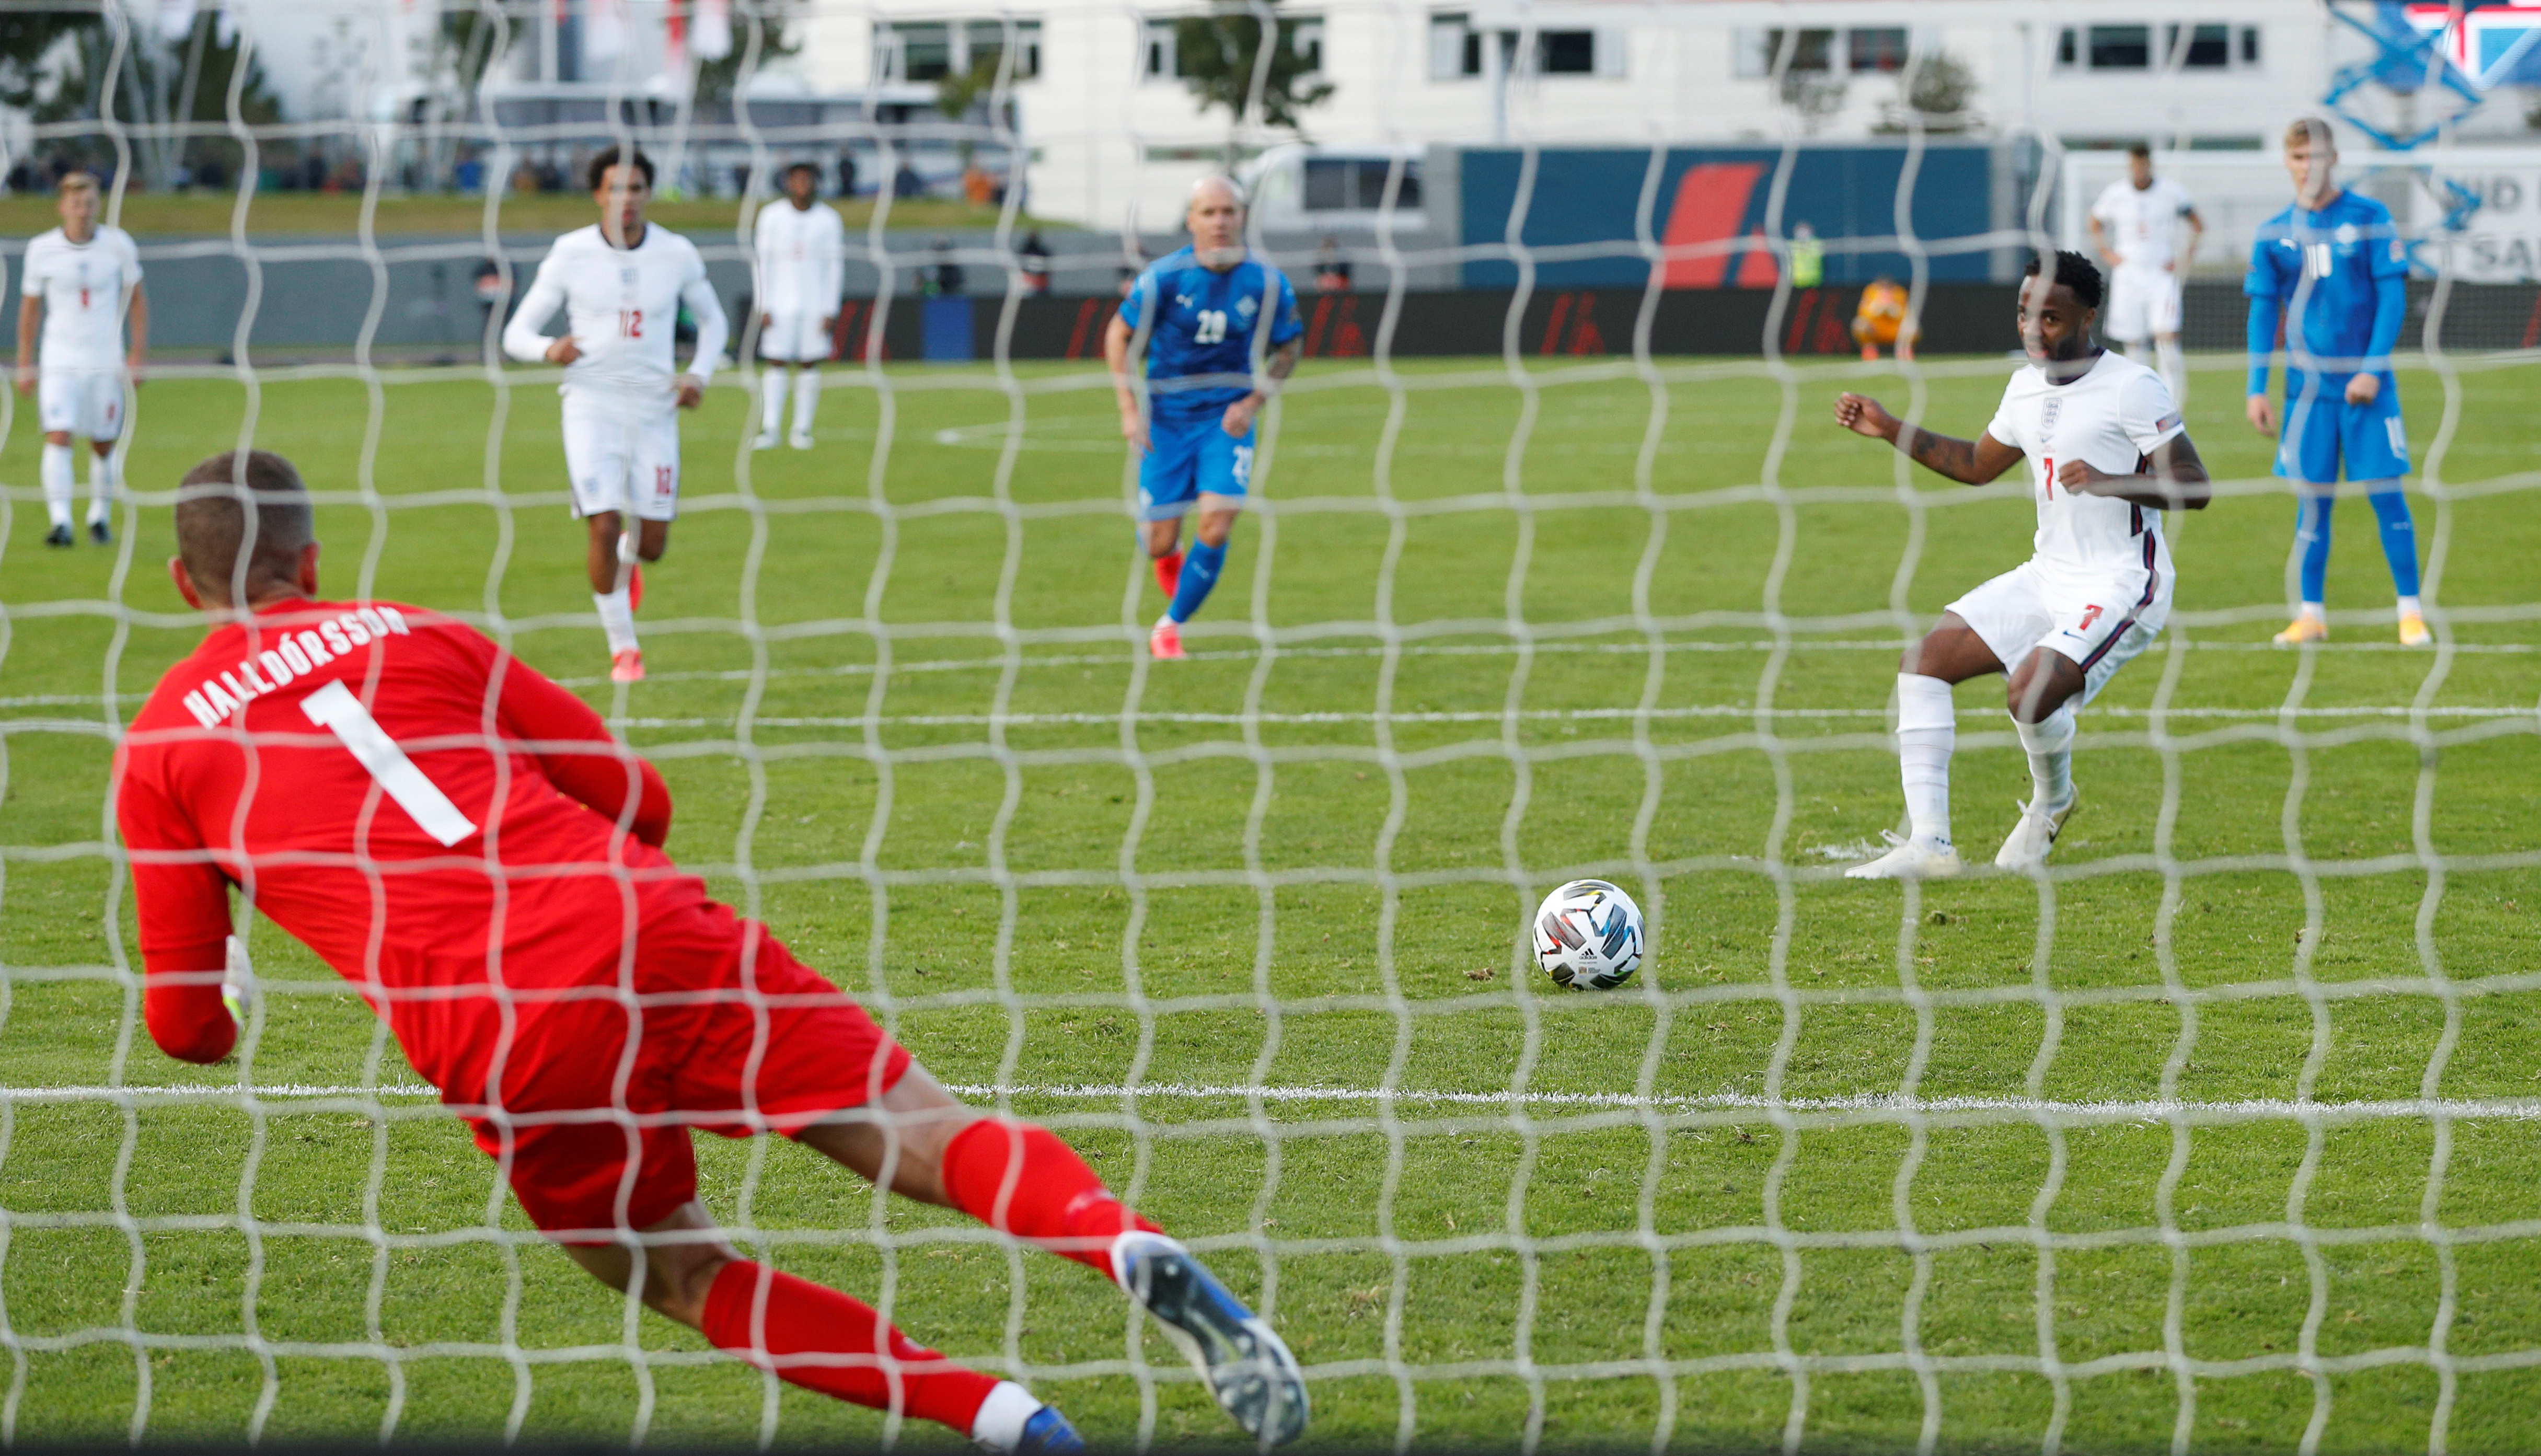 England's Raheem Sterling scores a goal.